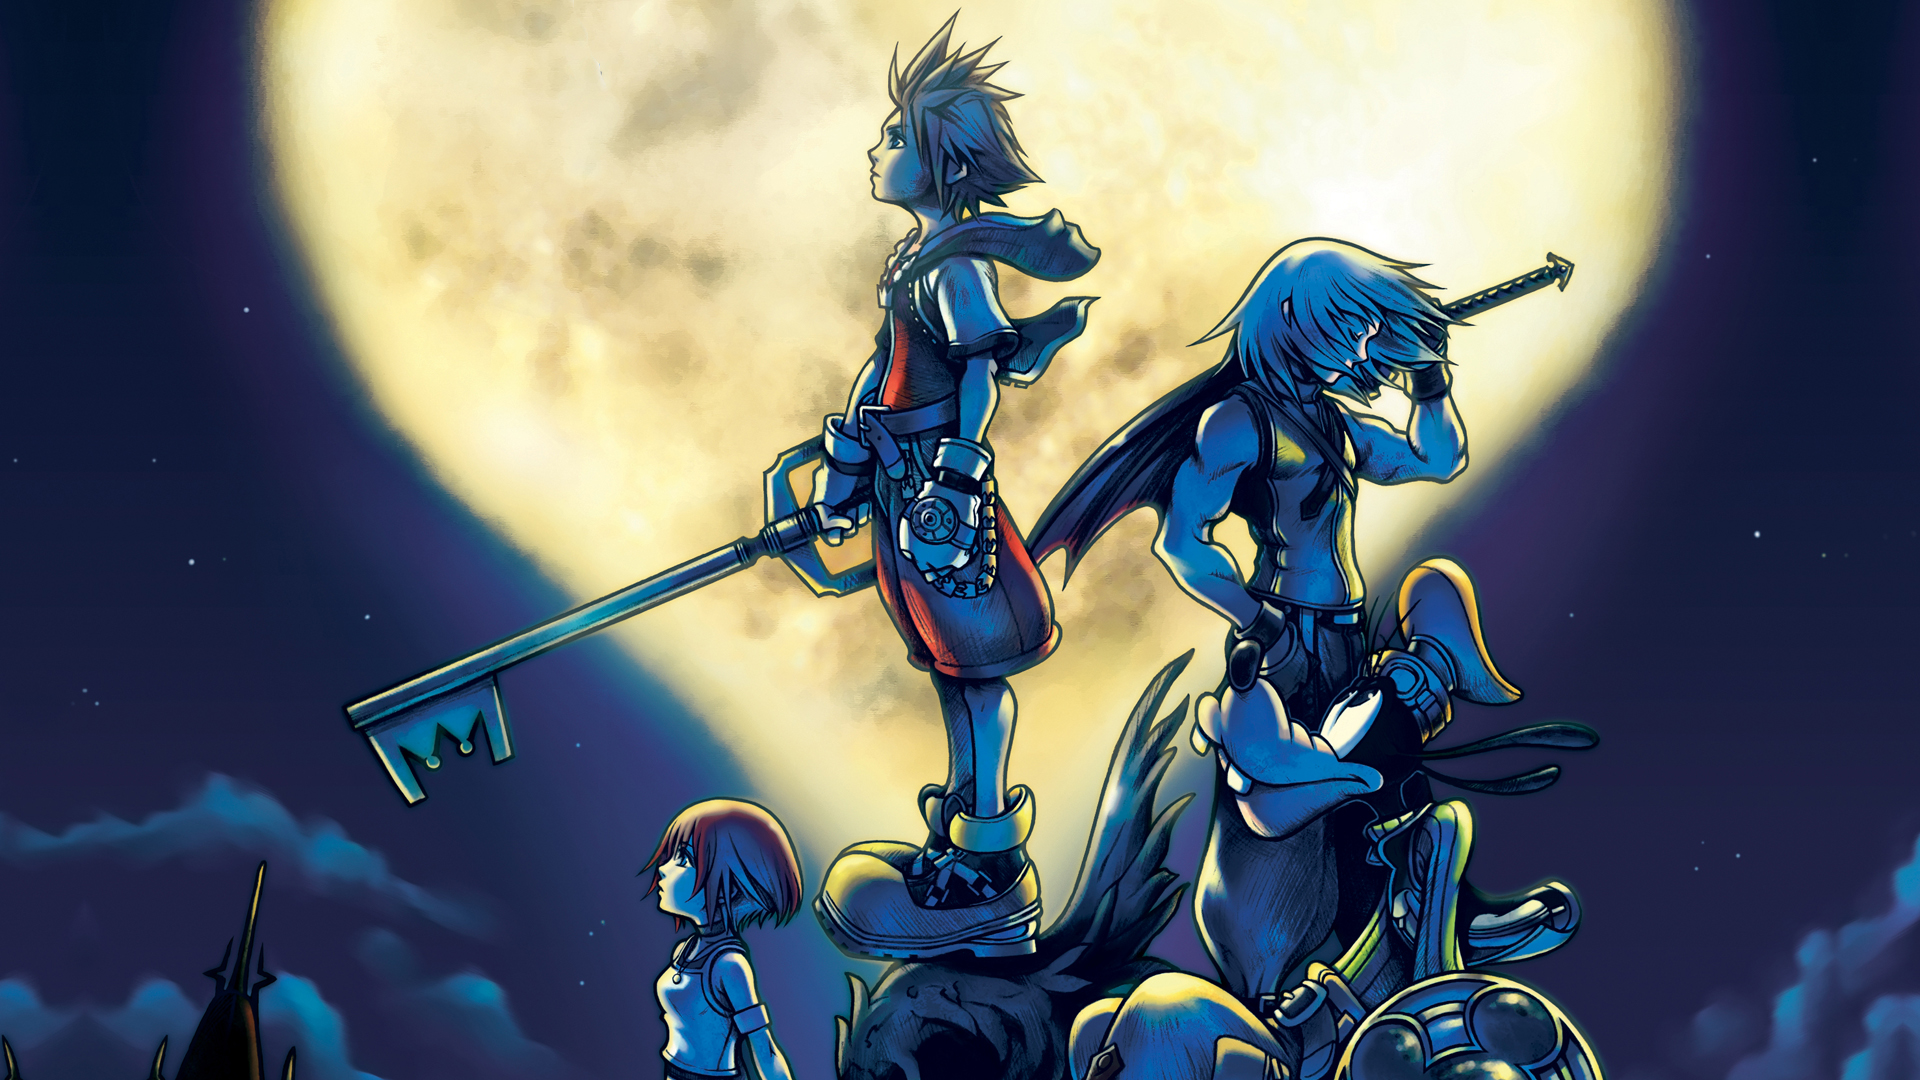 hd wallpaper Kingdom Hearts Wallpaper HD 1920x1080